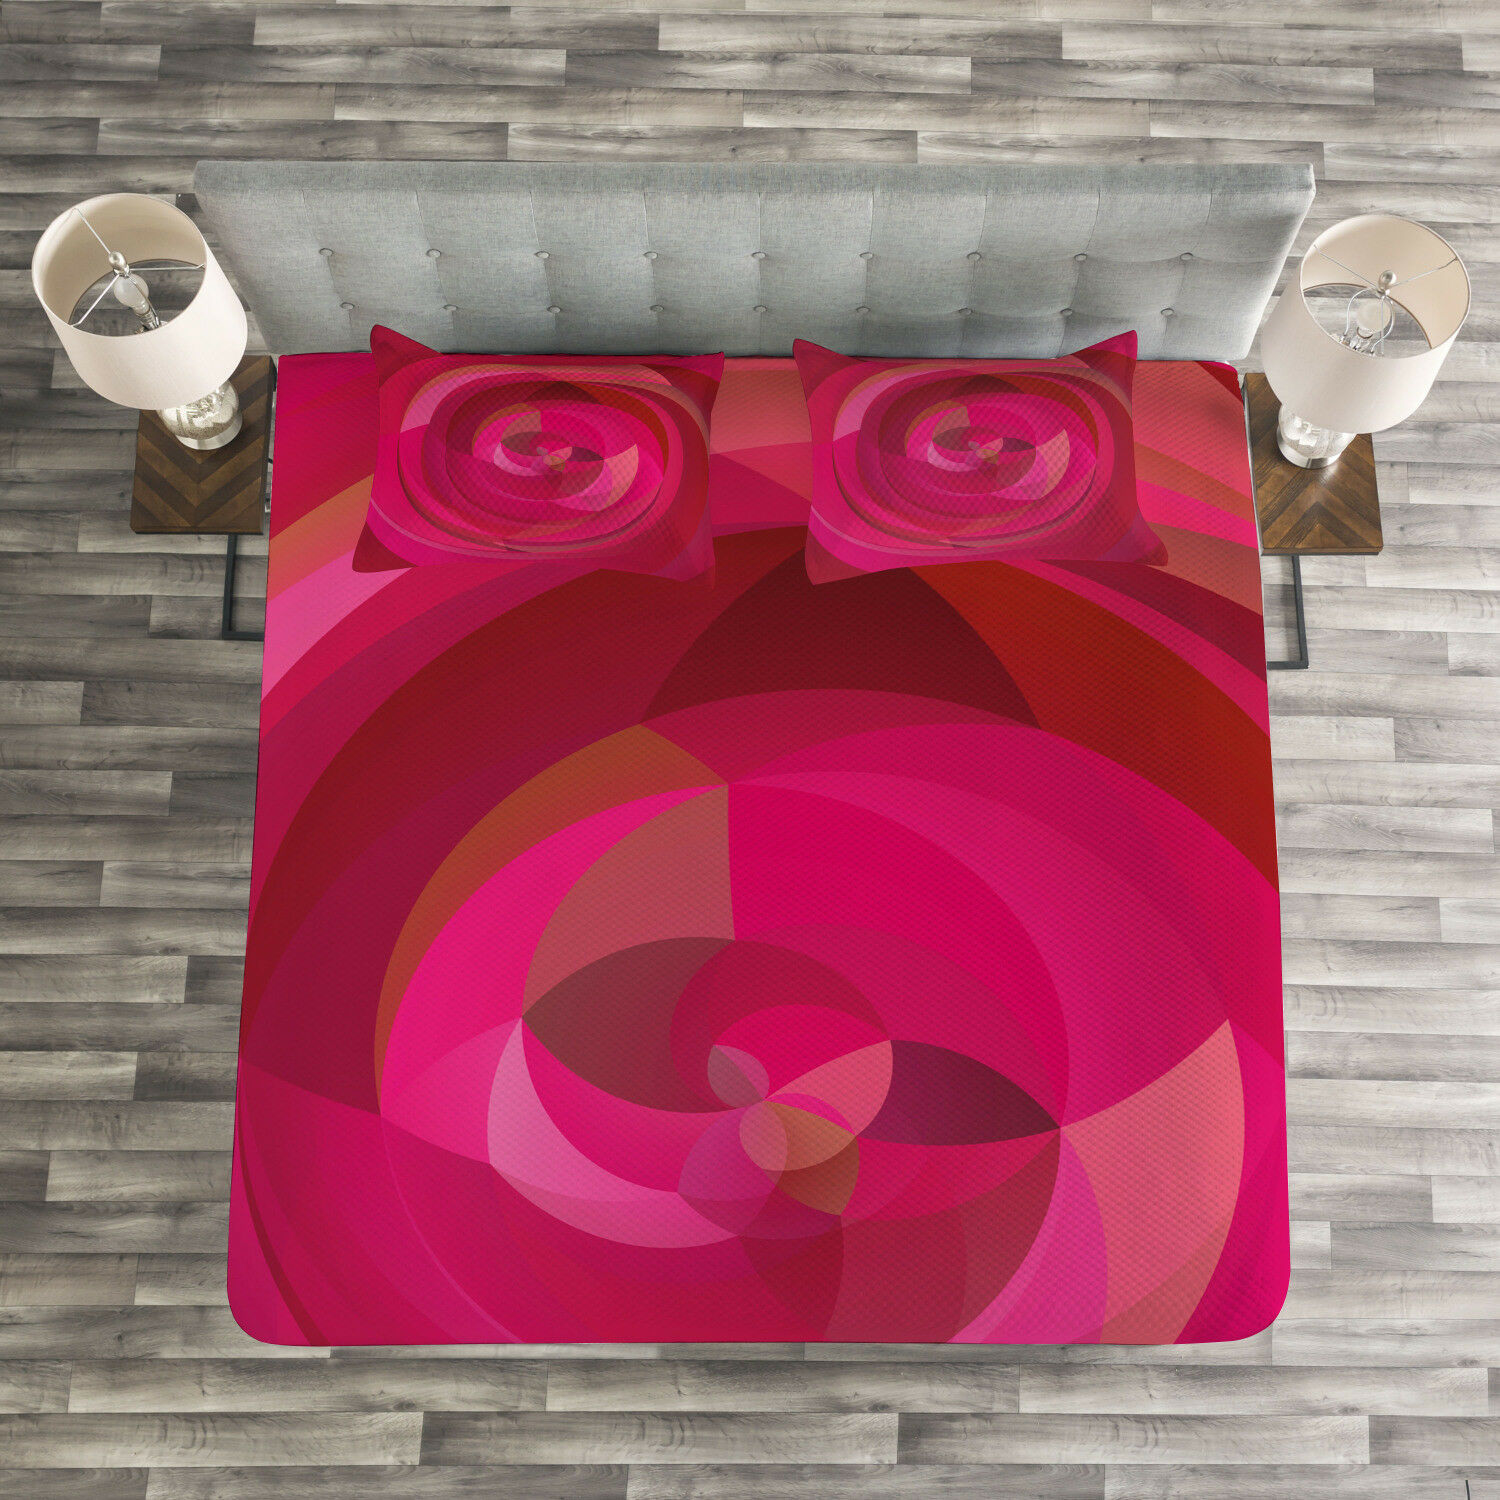 Hot Pink Quilted Bedspread & Pillow Shams Set, Abstract Swirls Shapes Print